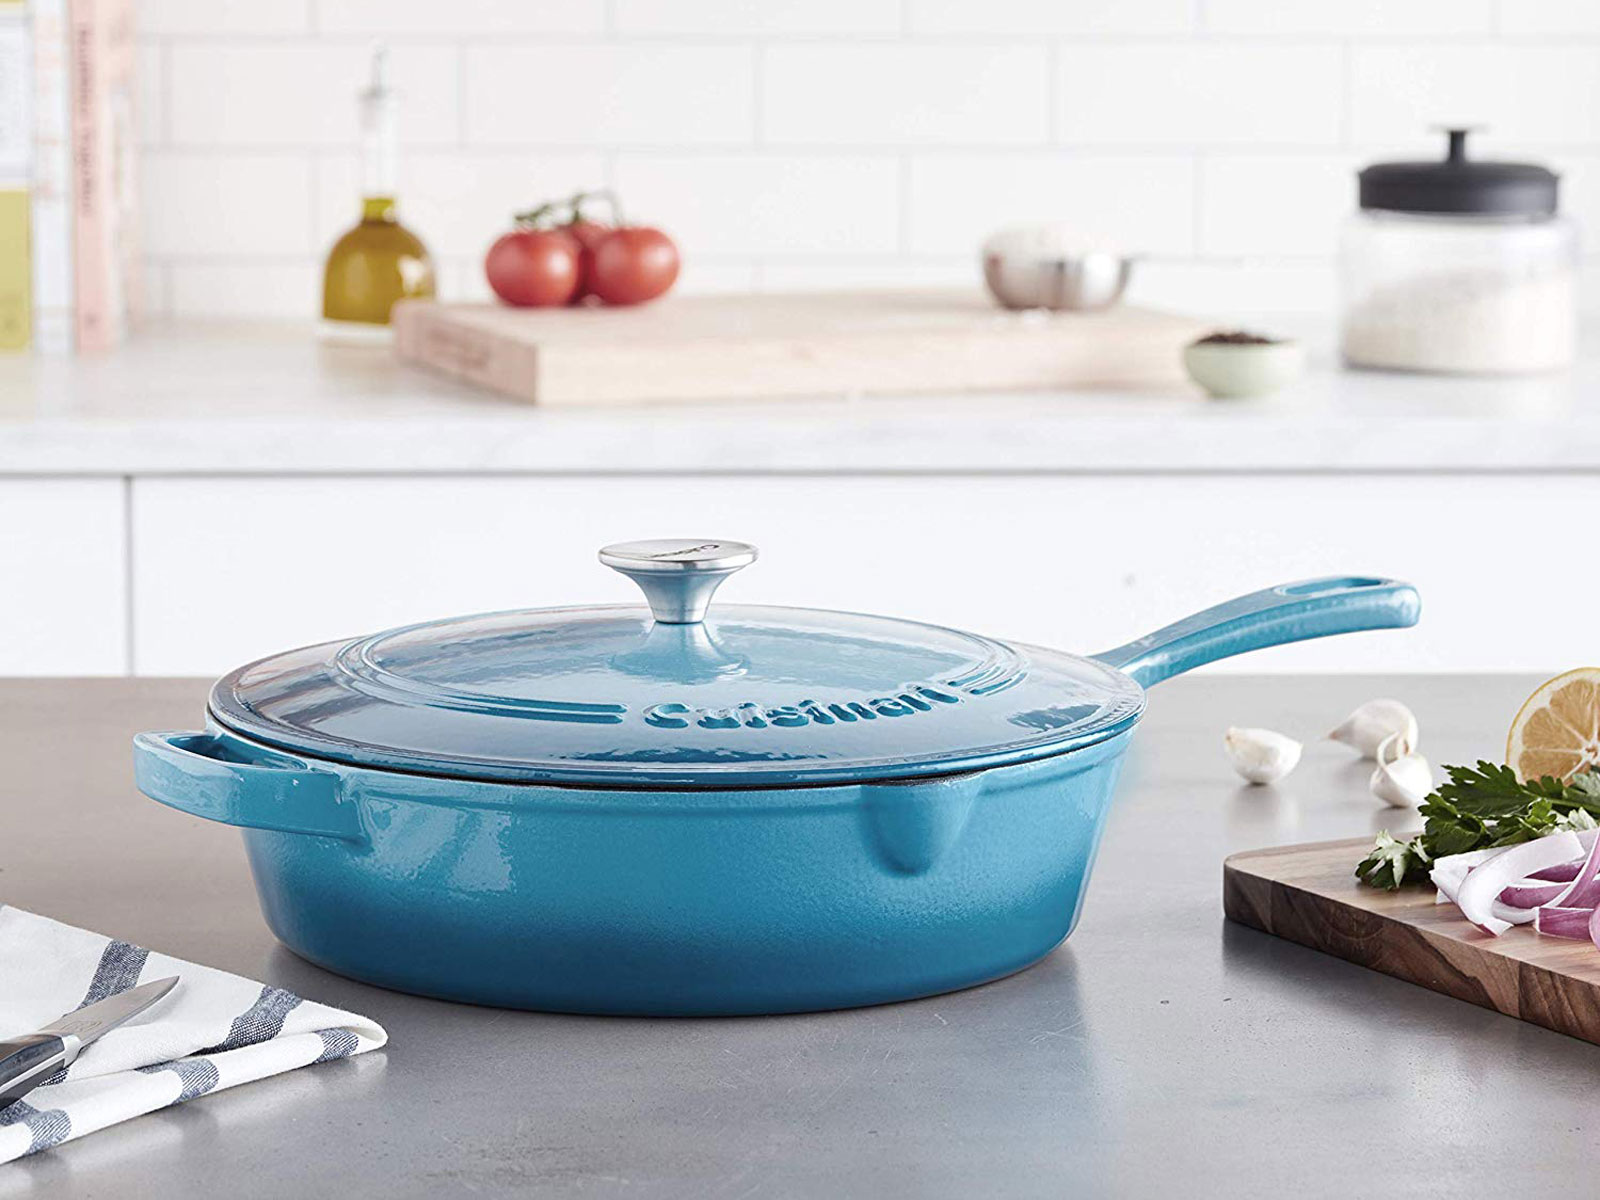 Cast Iron Cuisinart Cookware Is Up to 46% Off on Amazon Right Now